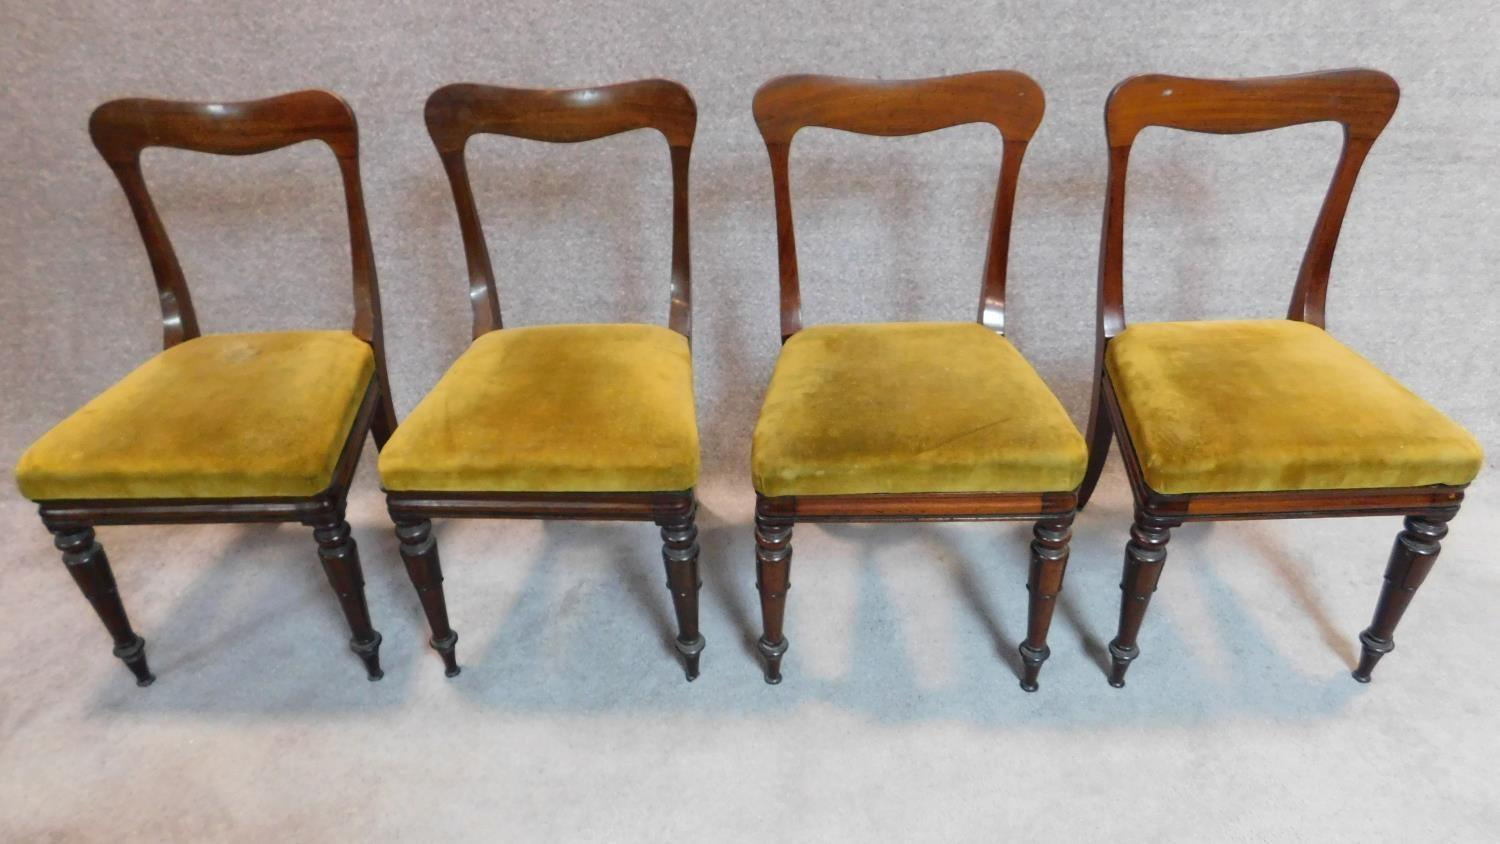 Lot 24 - A set of four mid Victorian mahogany dining chairs with shaped backs, mustard upholstery on turned